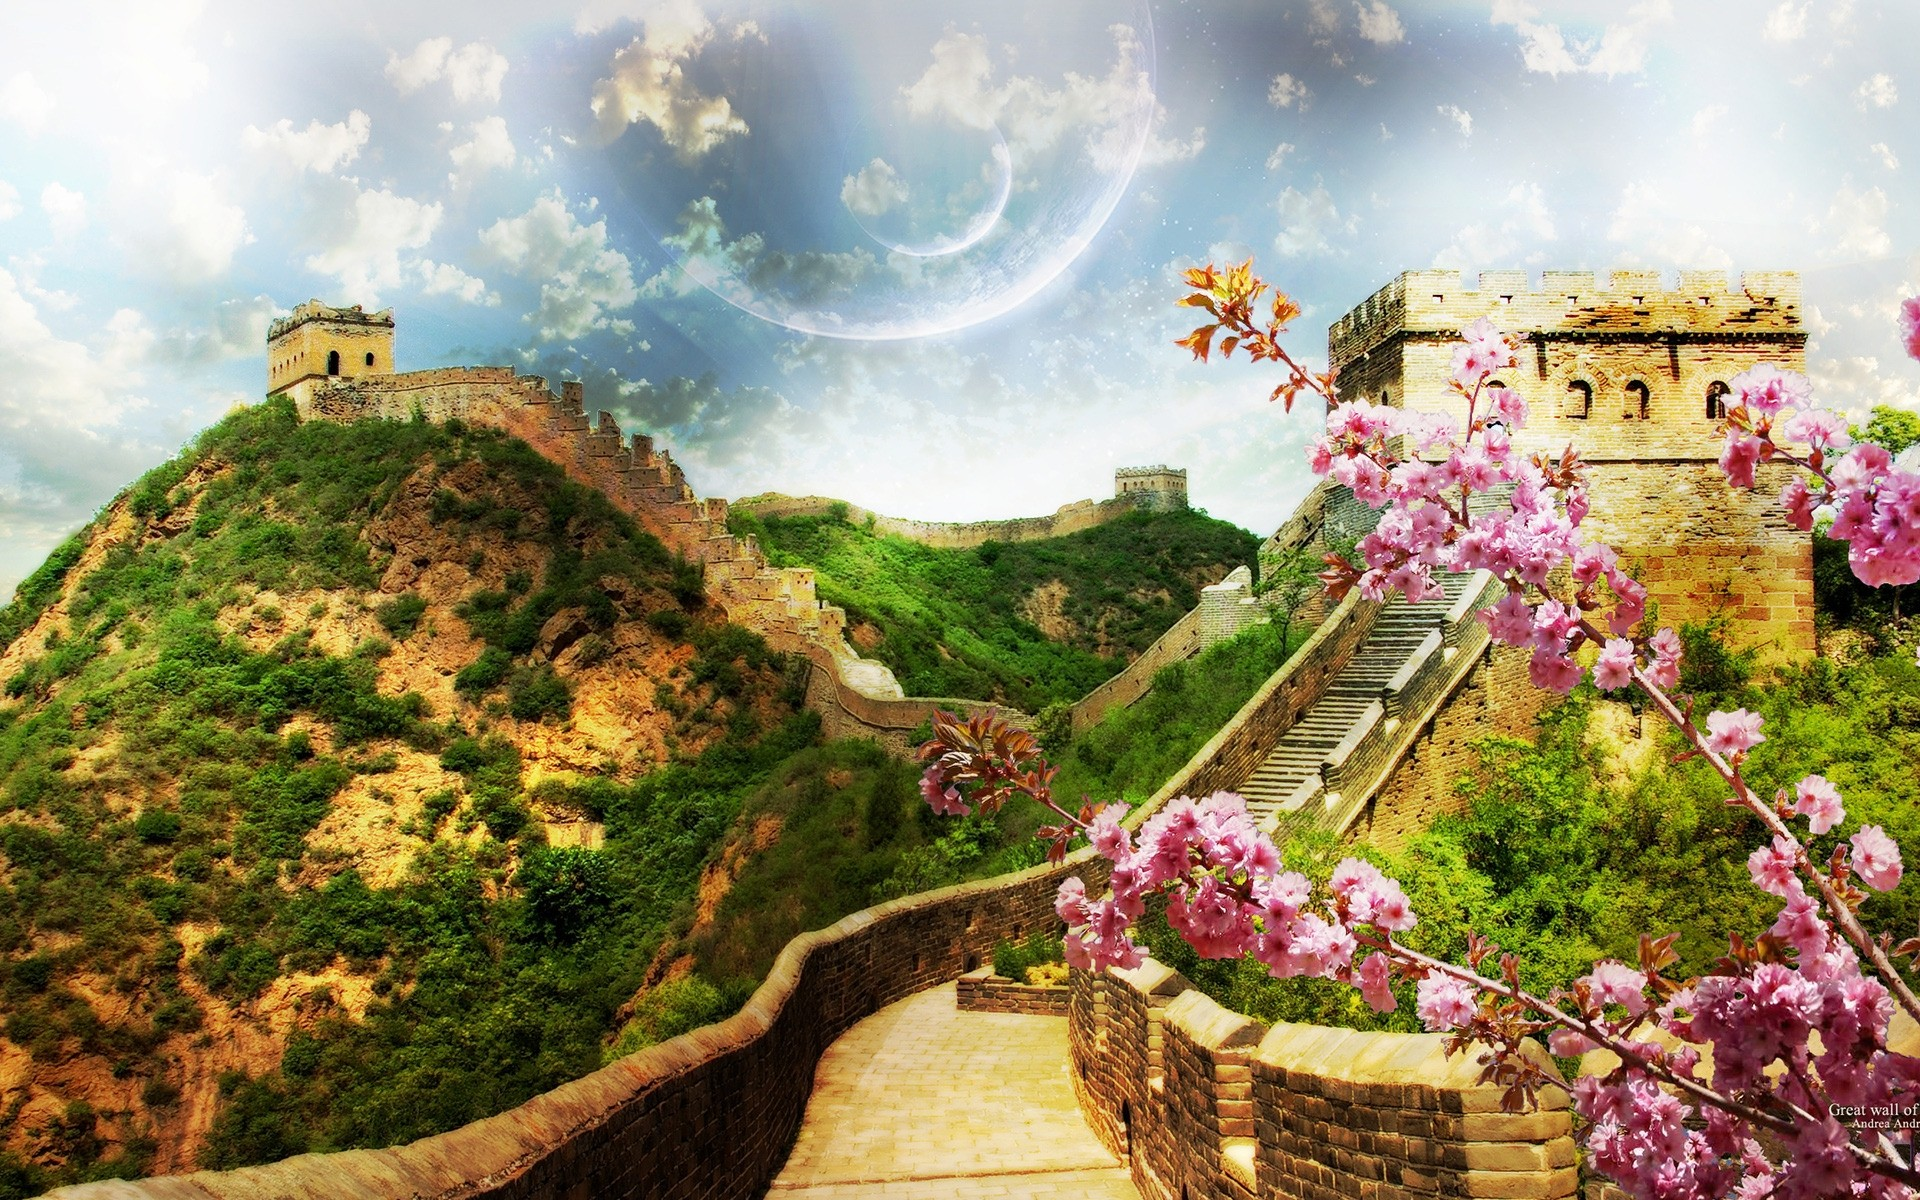 china architecture travel building tourism castle hill sky landmark landscape old ancient scenic town outdoors sight tree fortress nature mountain cherry blossom